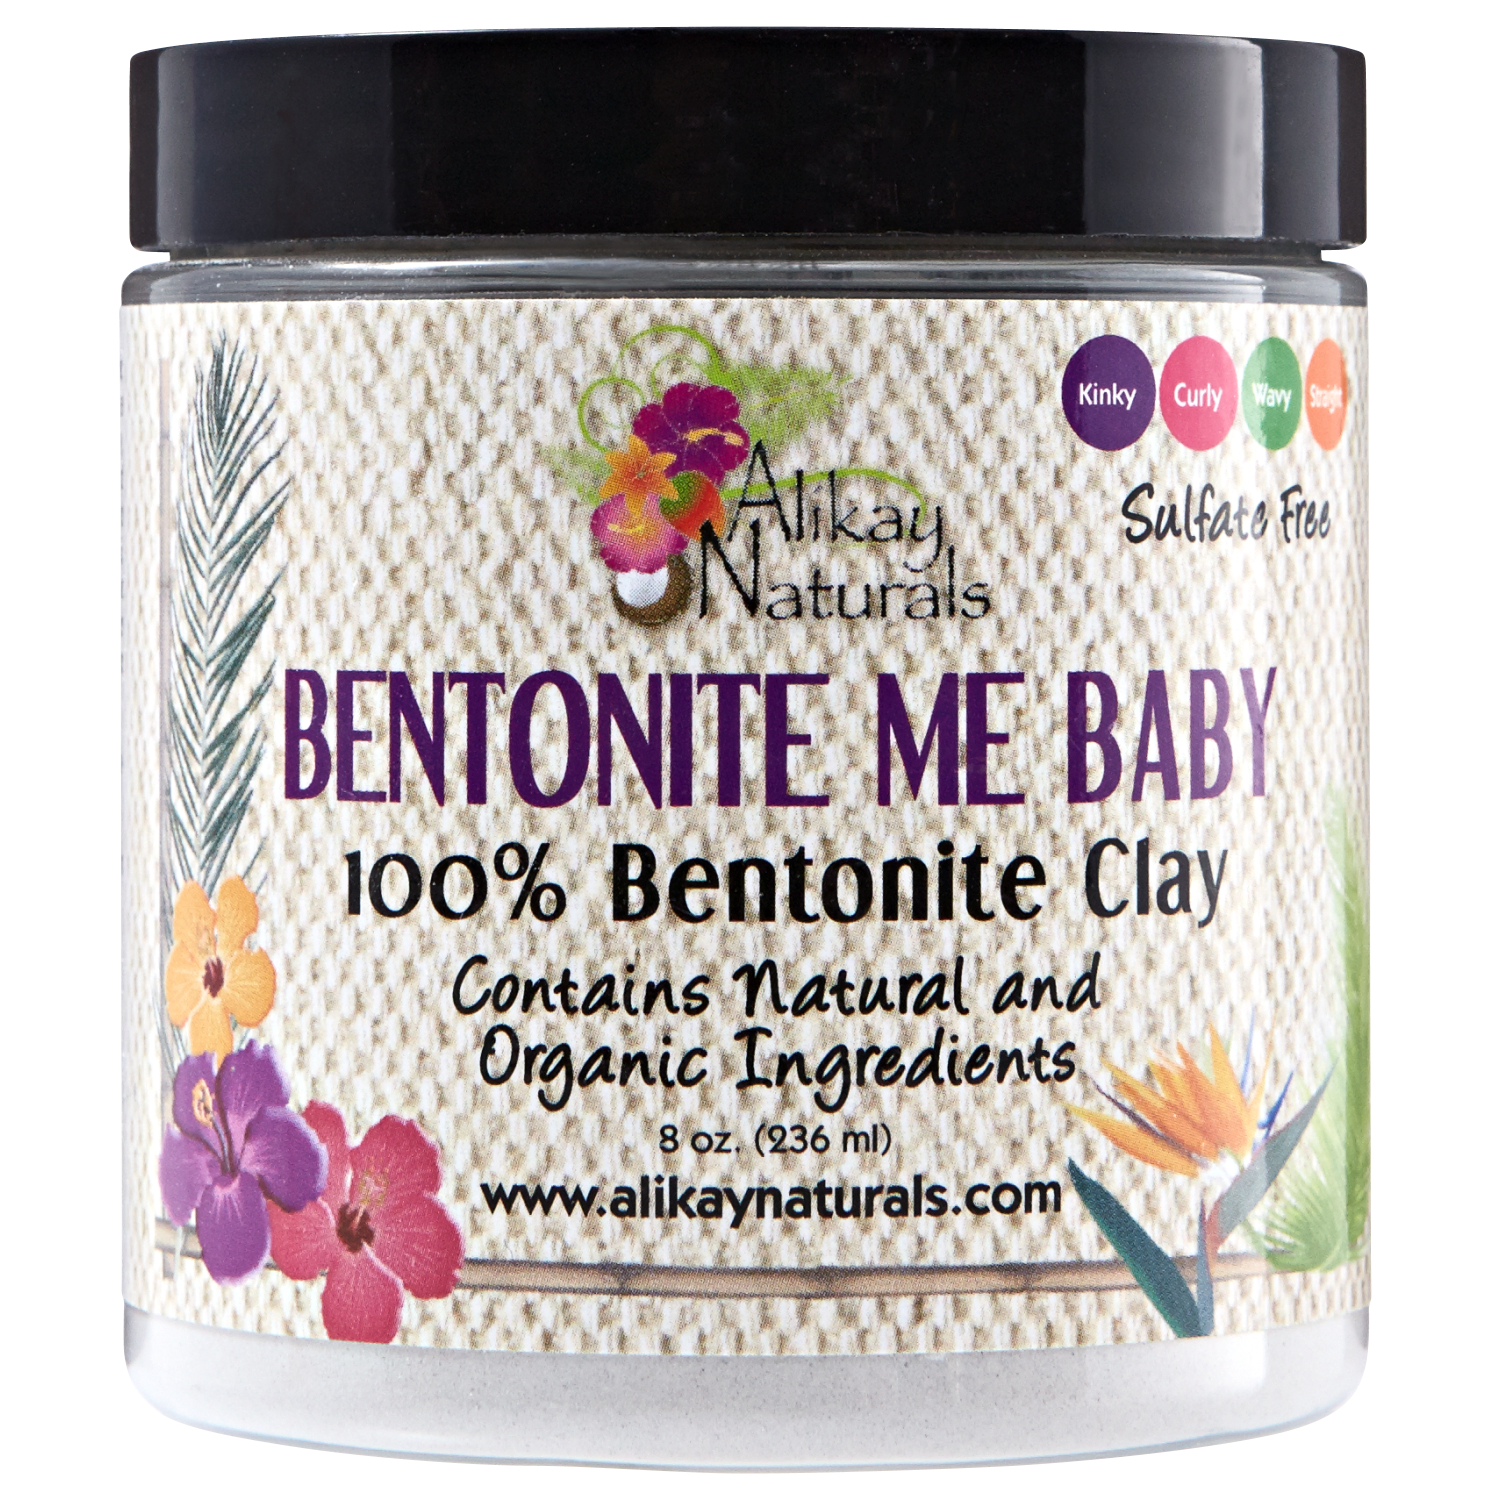 Alikay Naturals Bentonite Me Baby 100% Bentonite Clay - 8 oz